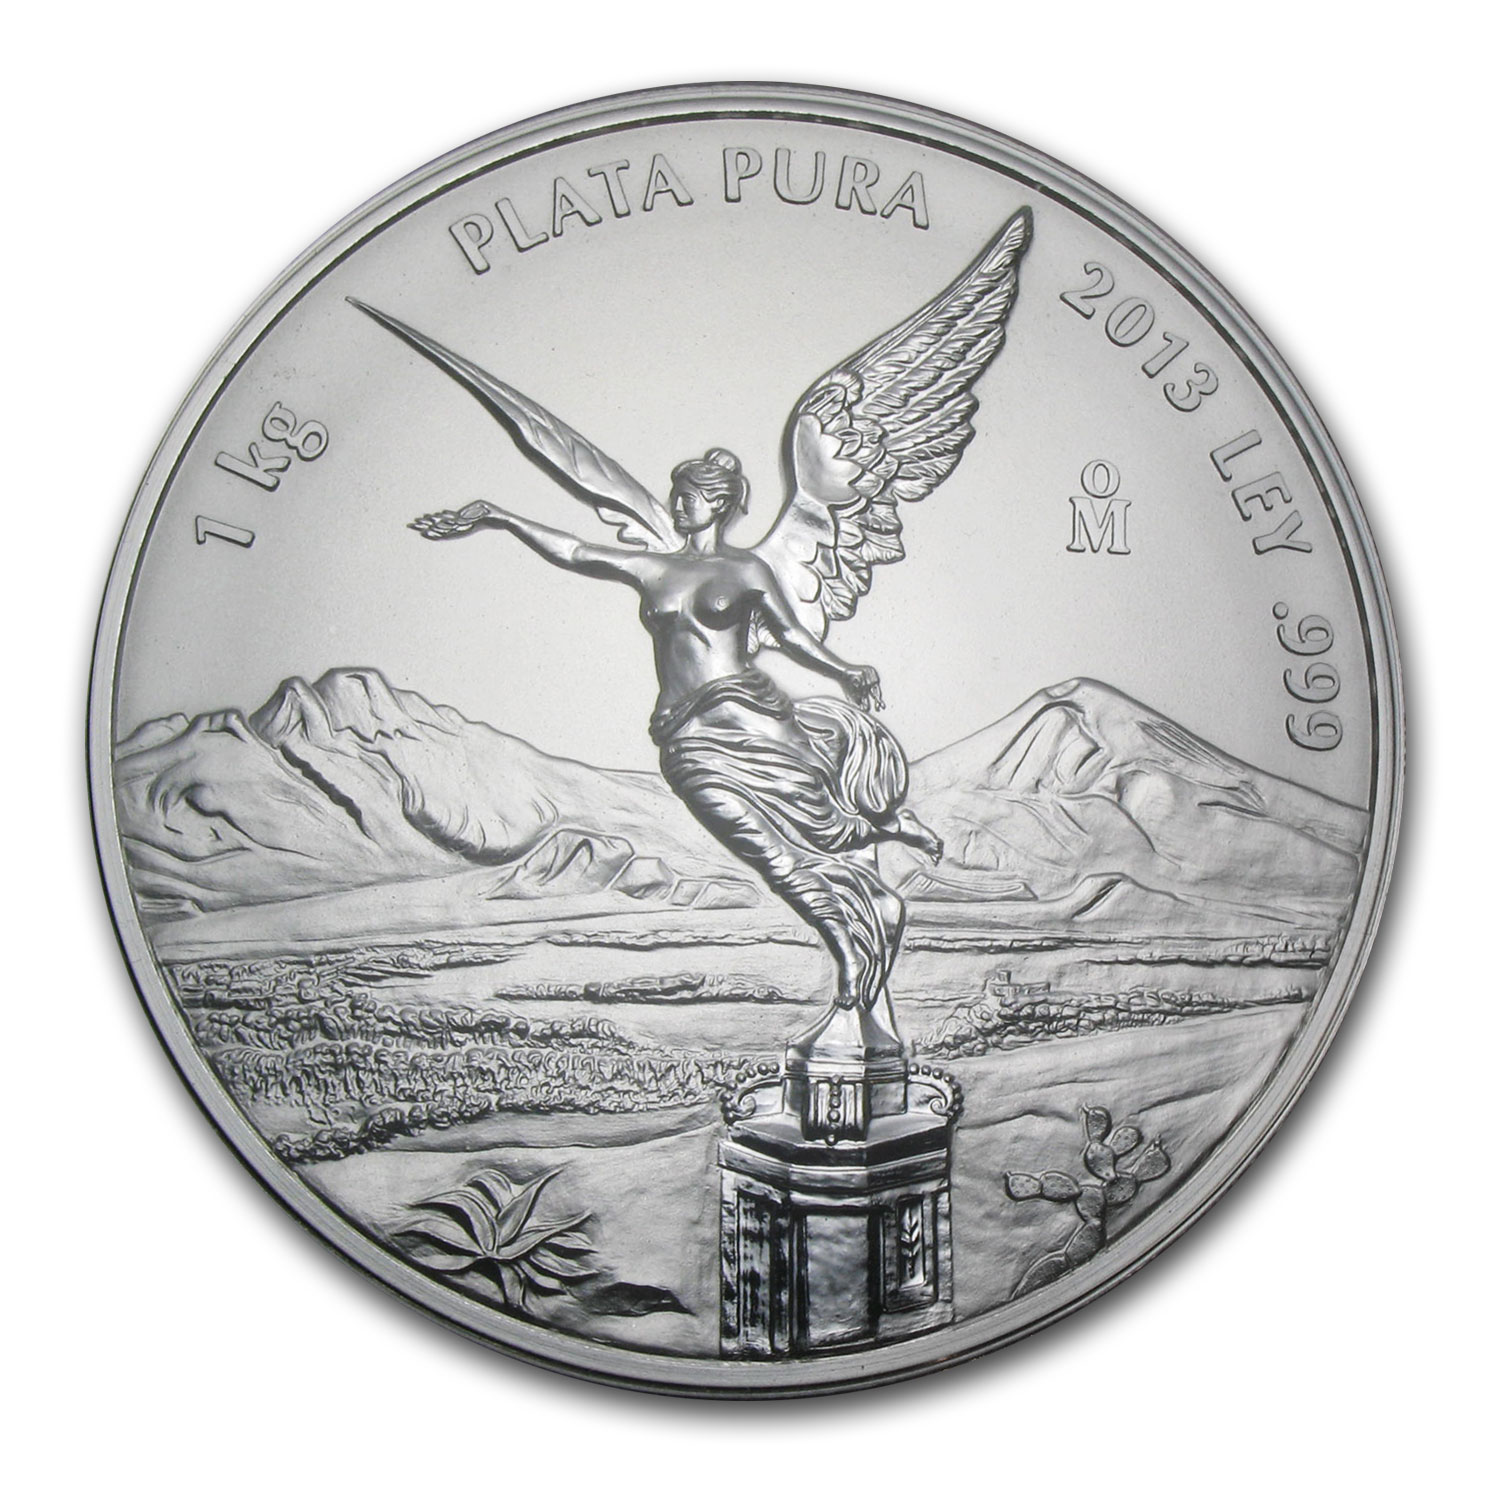 2013 Mexico 1 kilo Silver Libertad Proof Like (w/Box & COA)